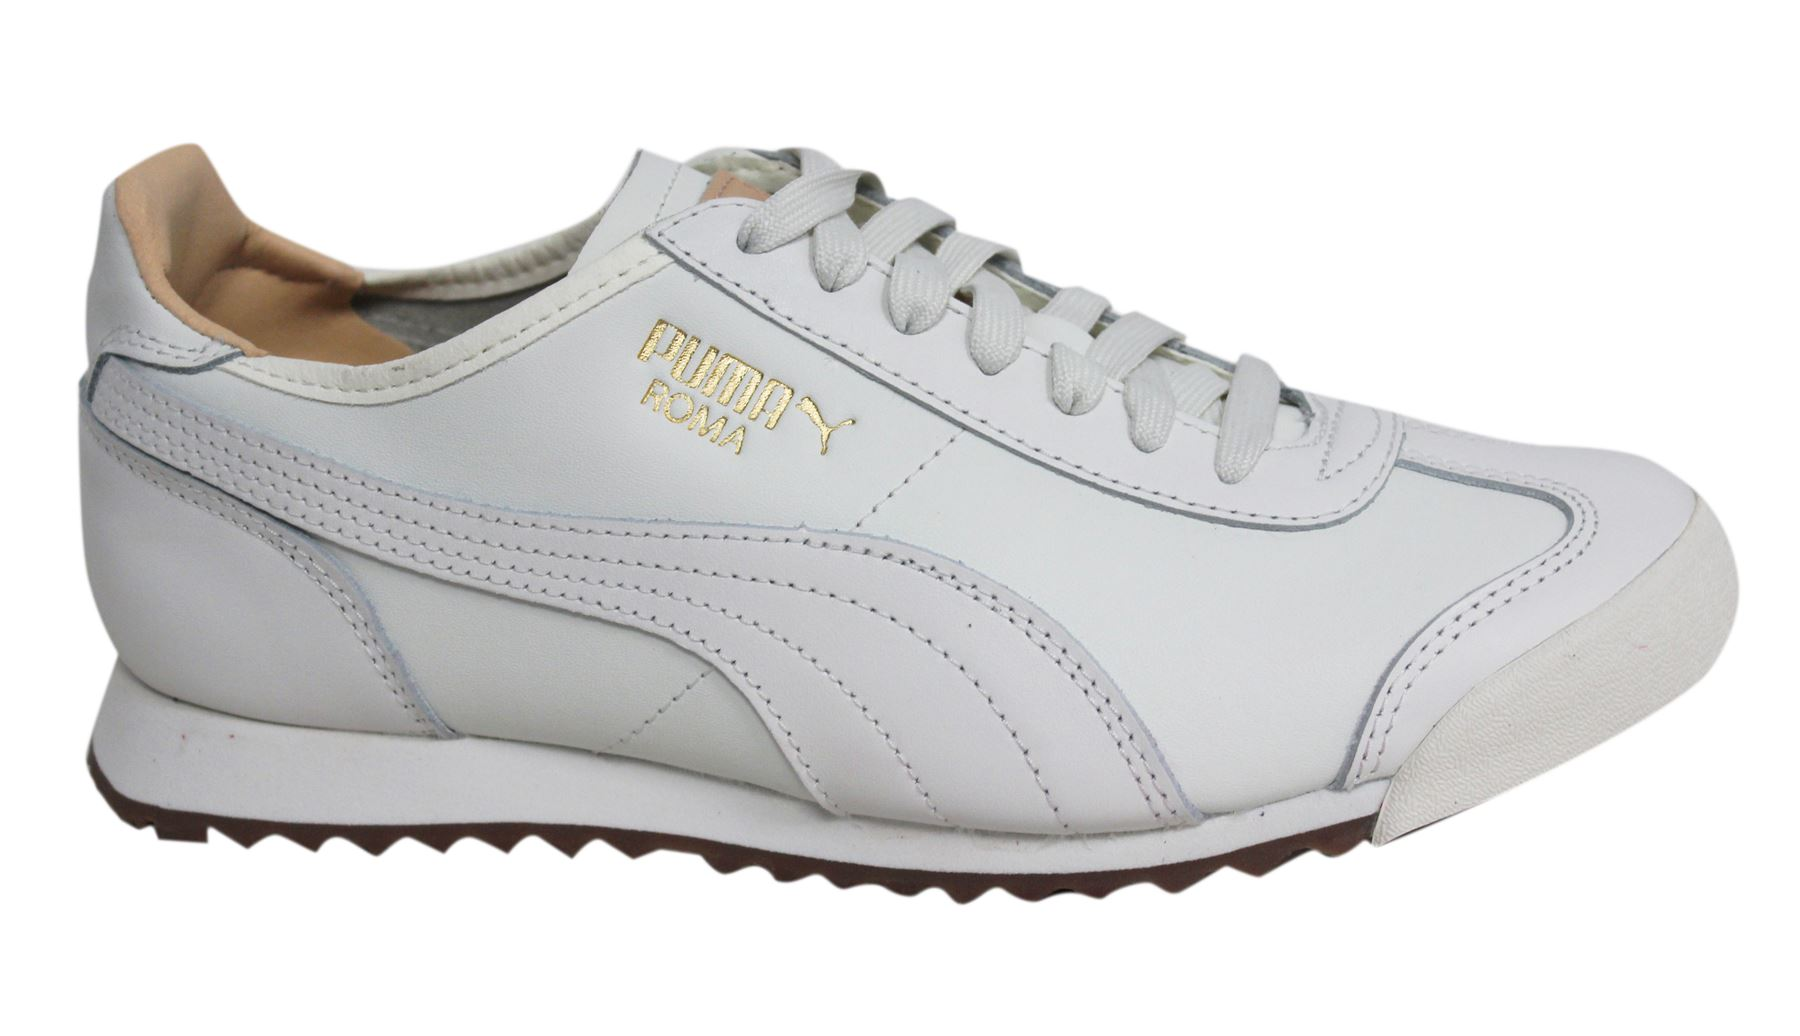 63fe10a013cd8a Puma Roma OG Natural Star White Lace Up Leather Mens Trainers 363184 01 U31